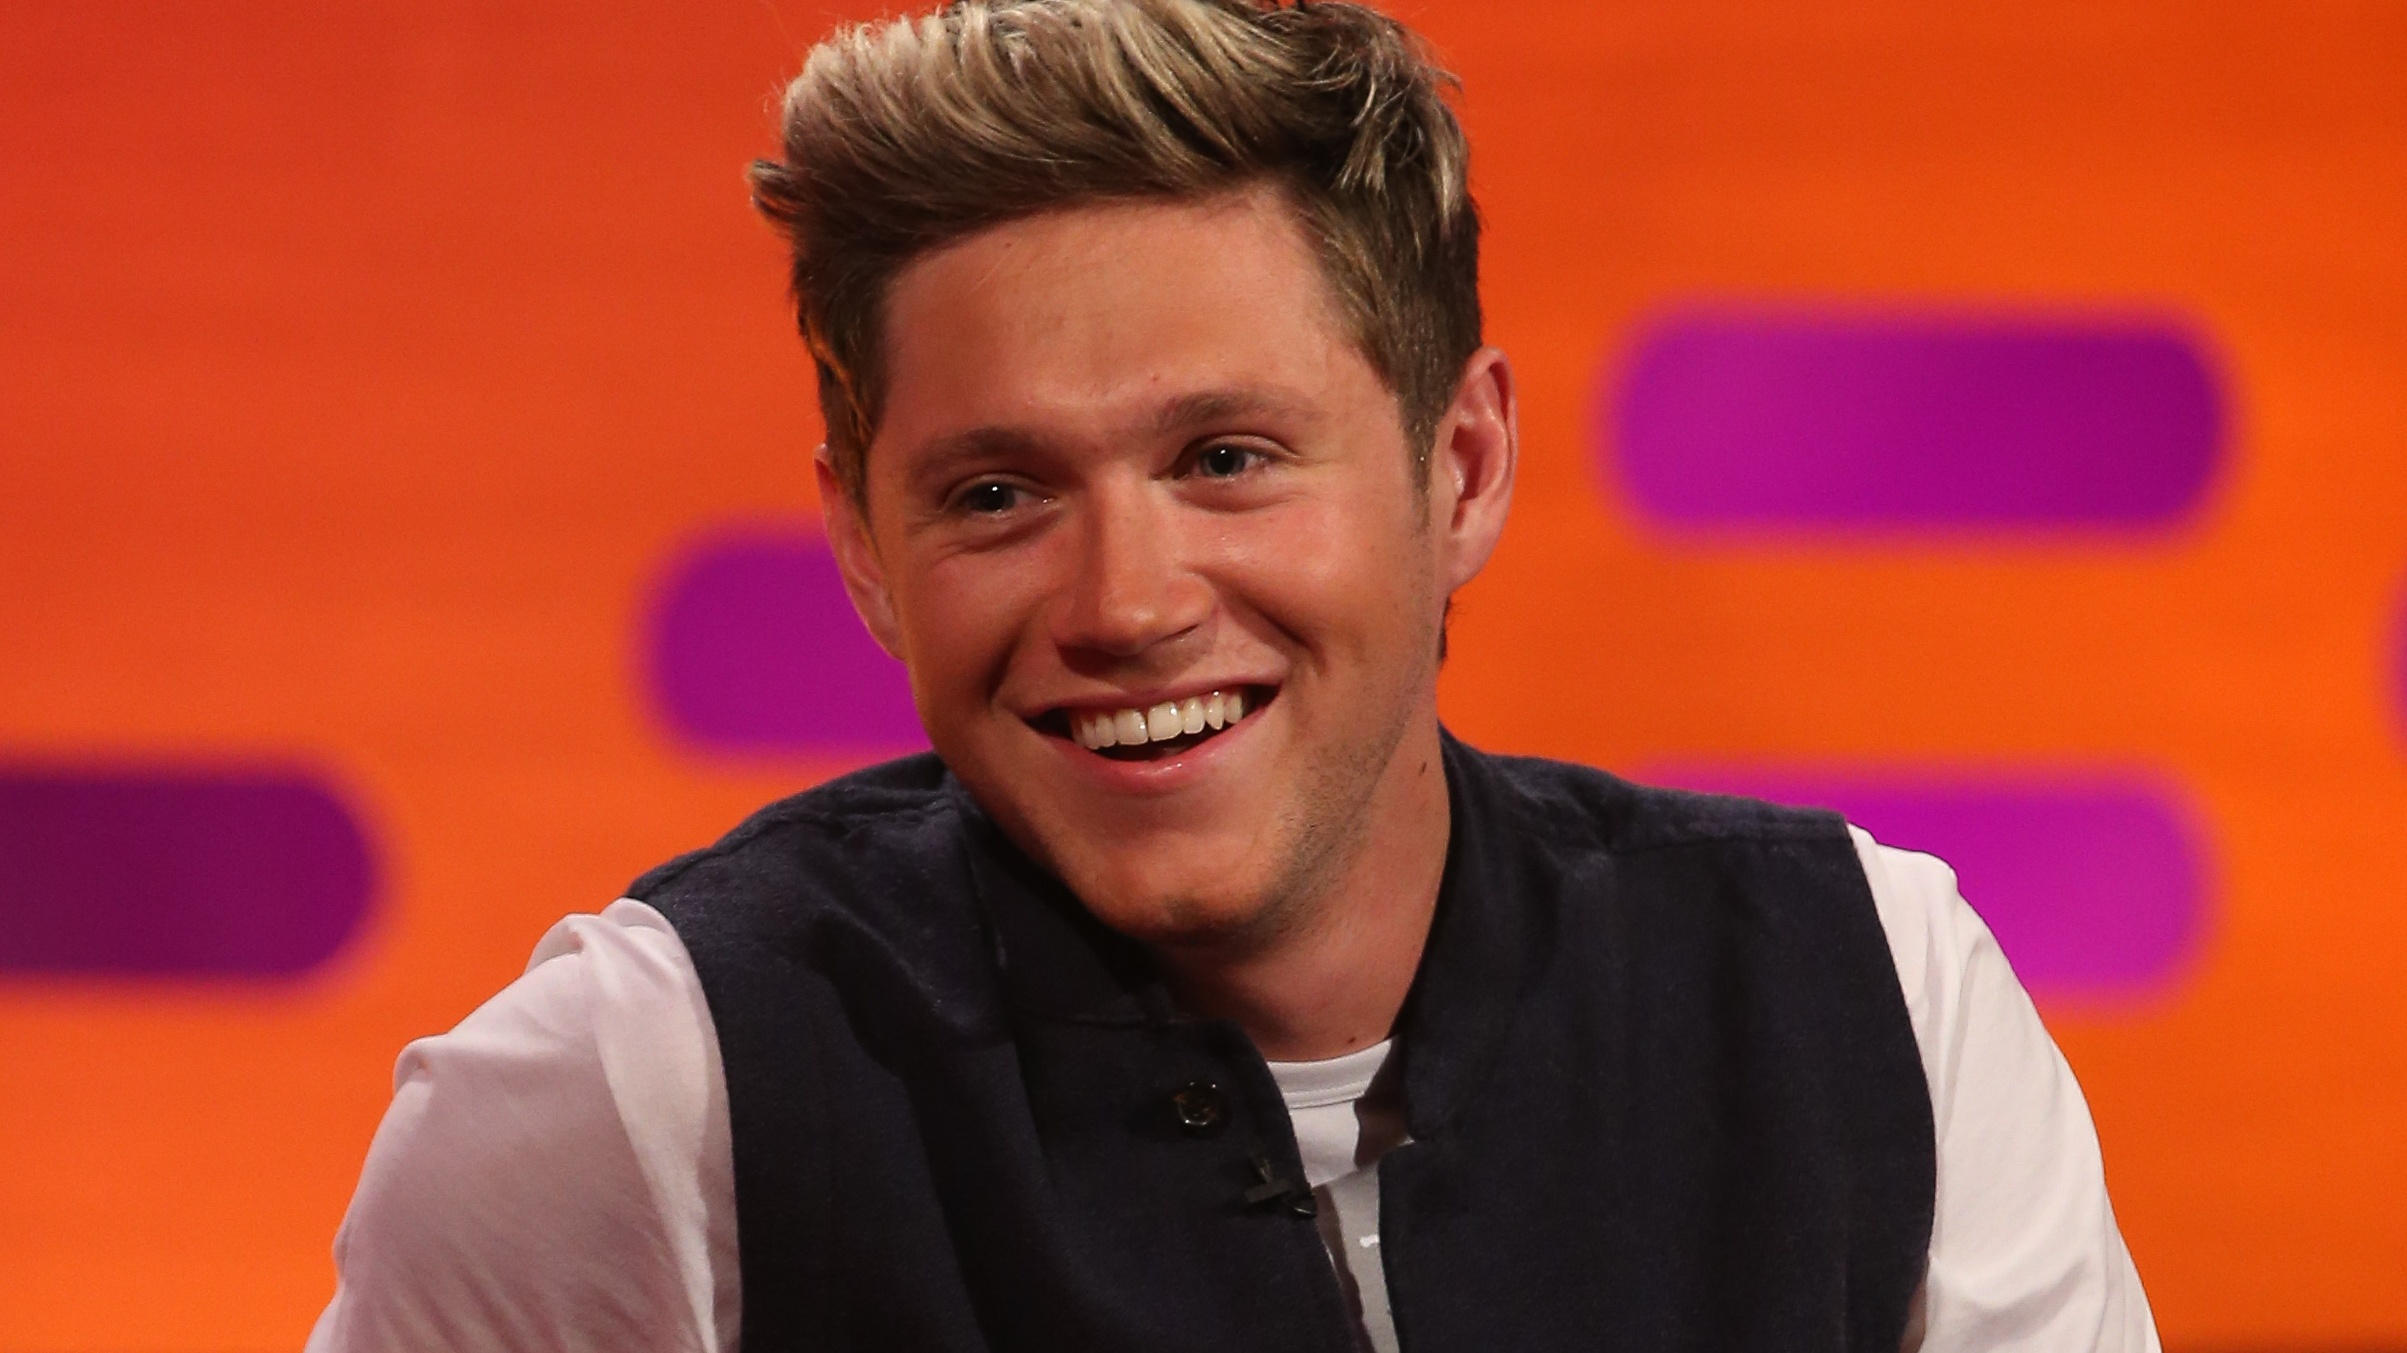 Niall Horan has been struck down by mystery illness